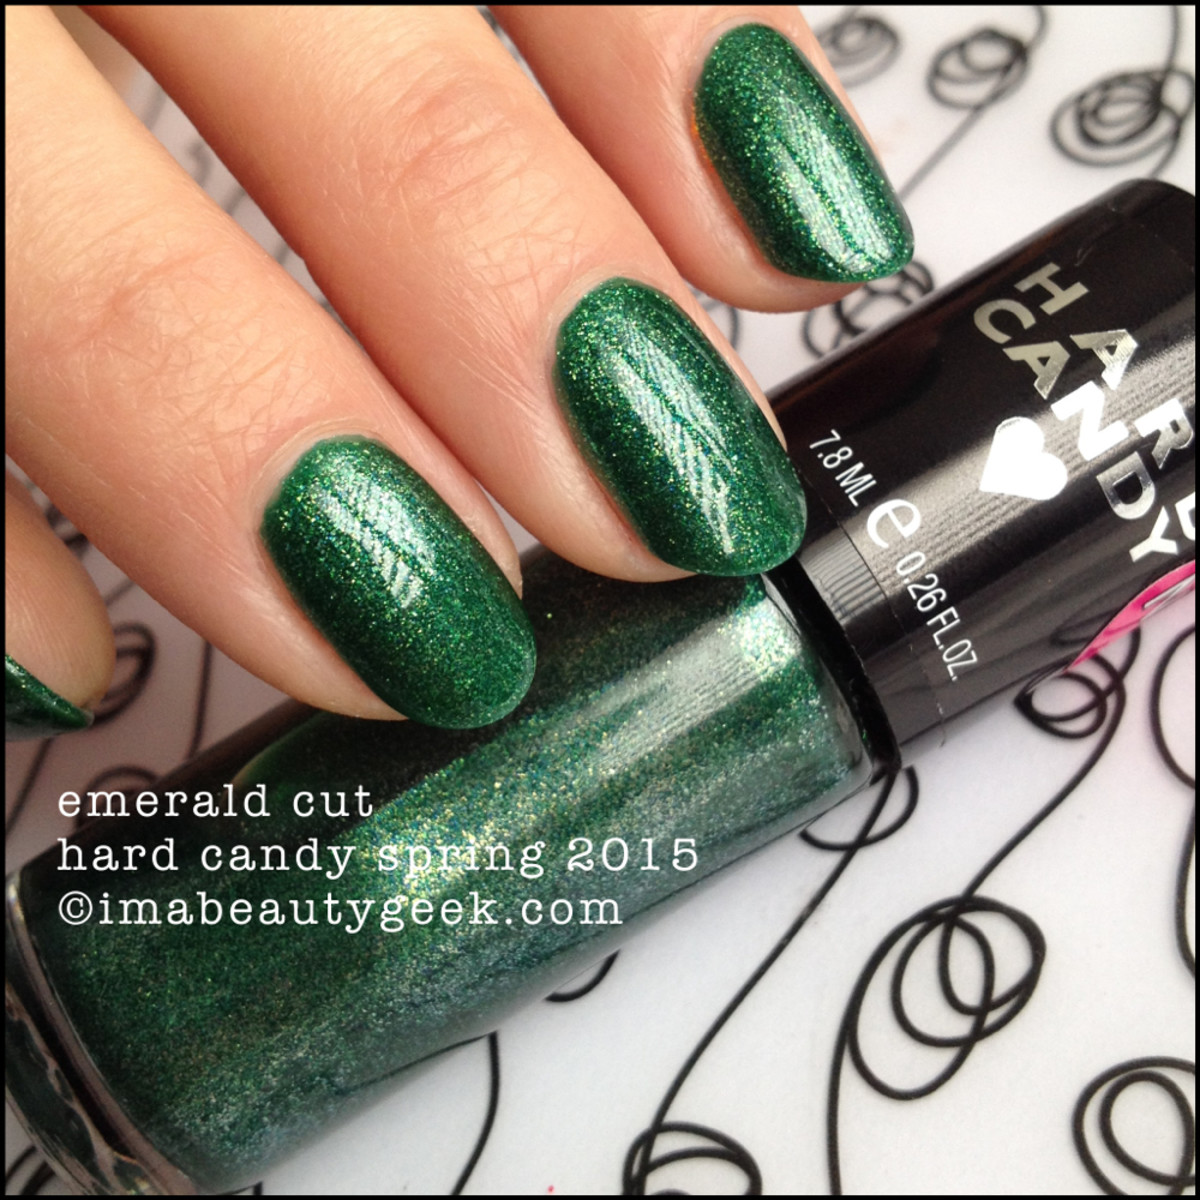 Hard Candy Nail Emerald Cut Spring 2015